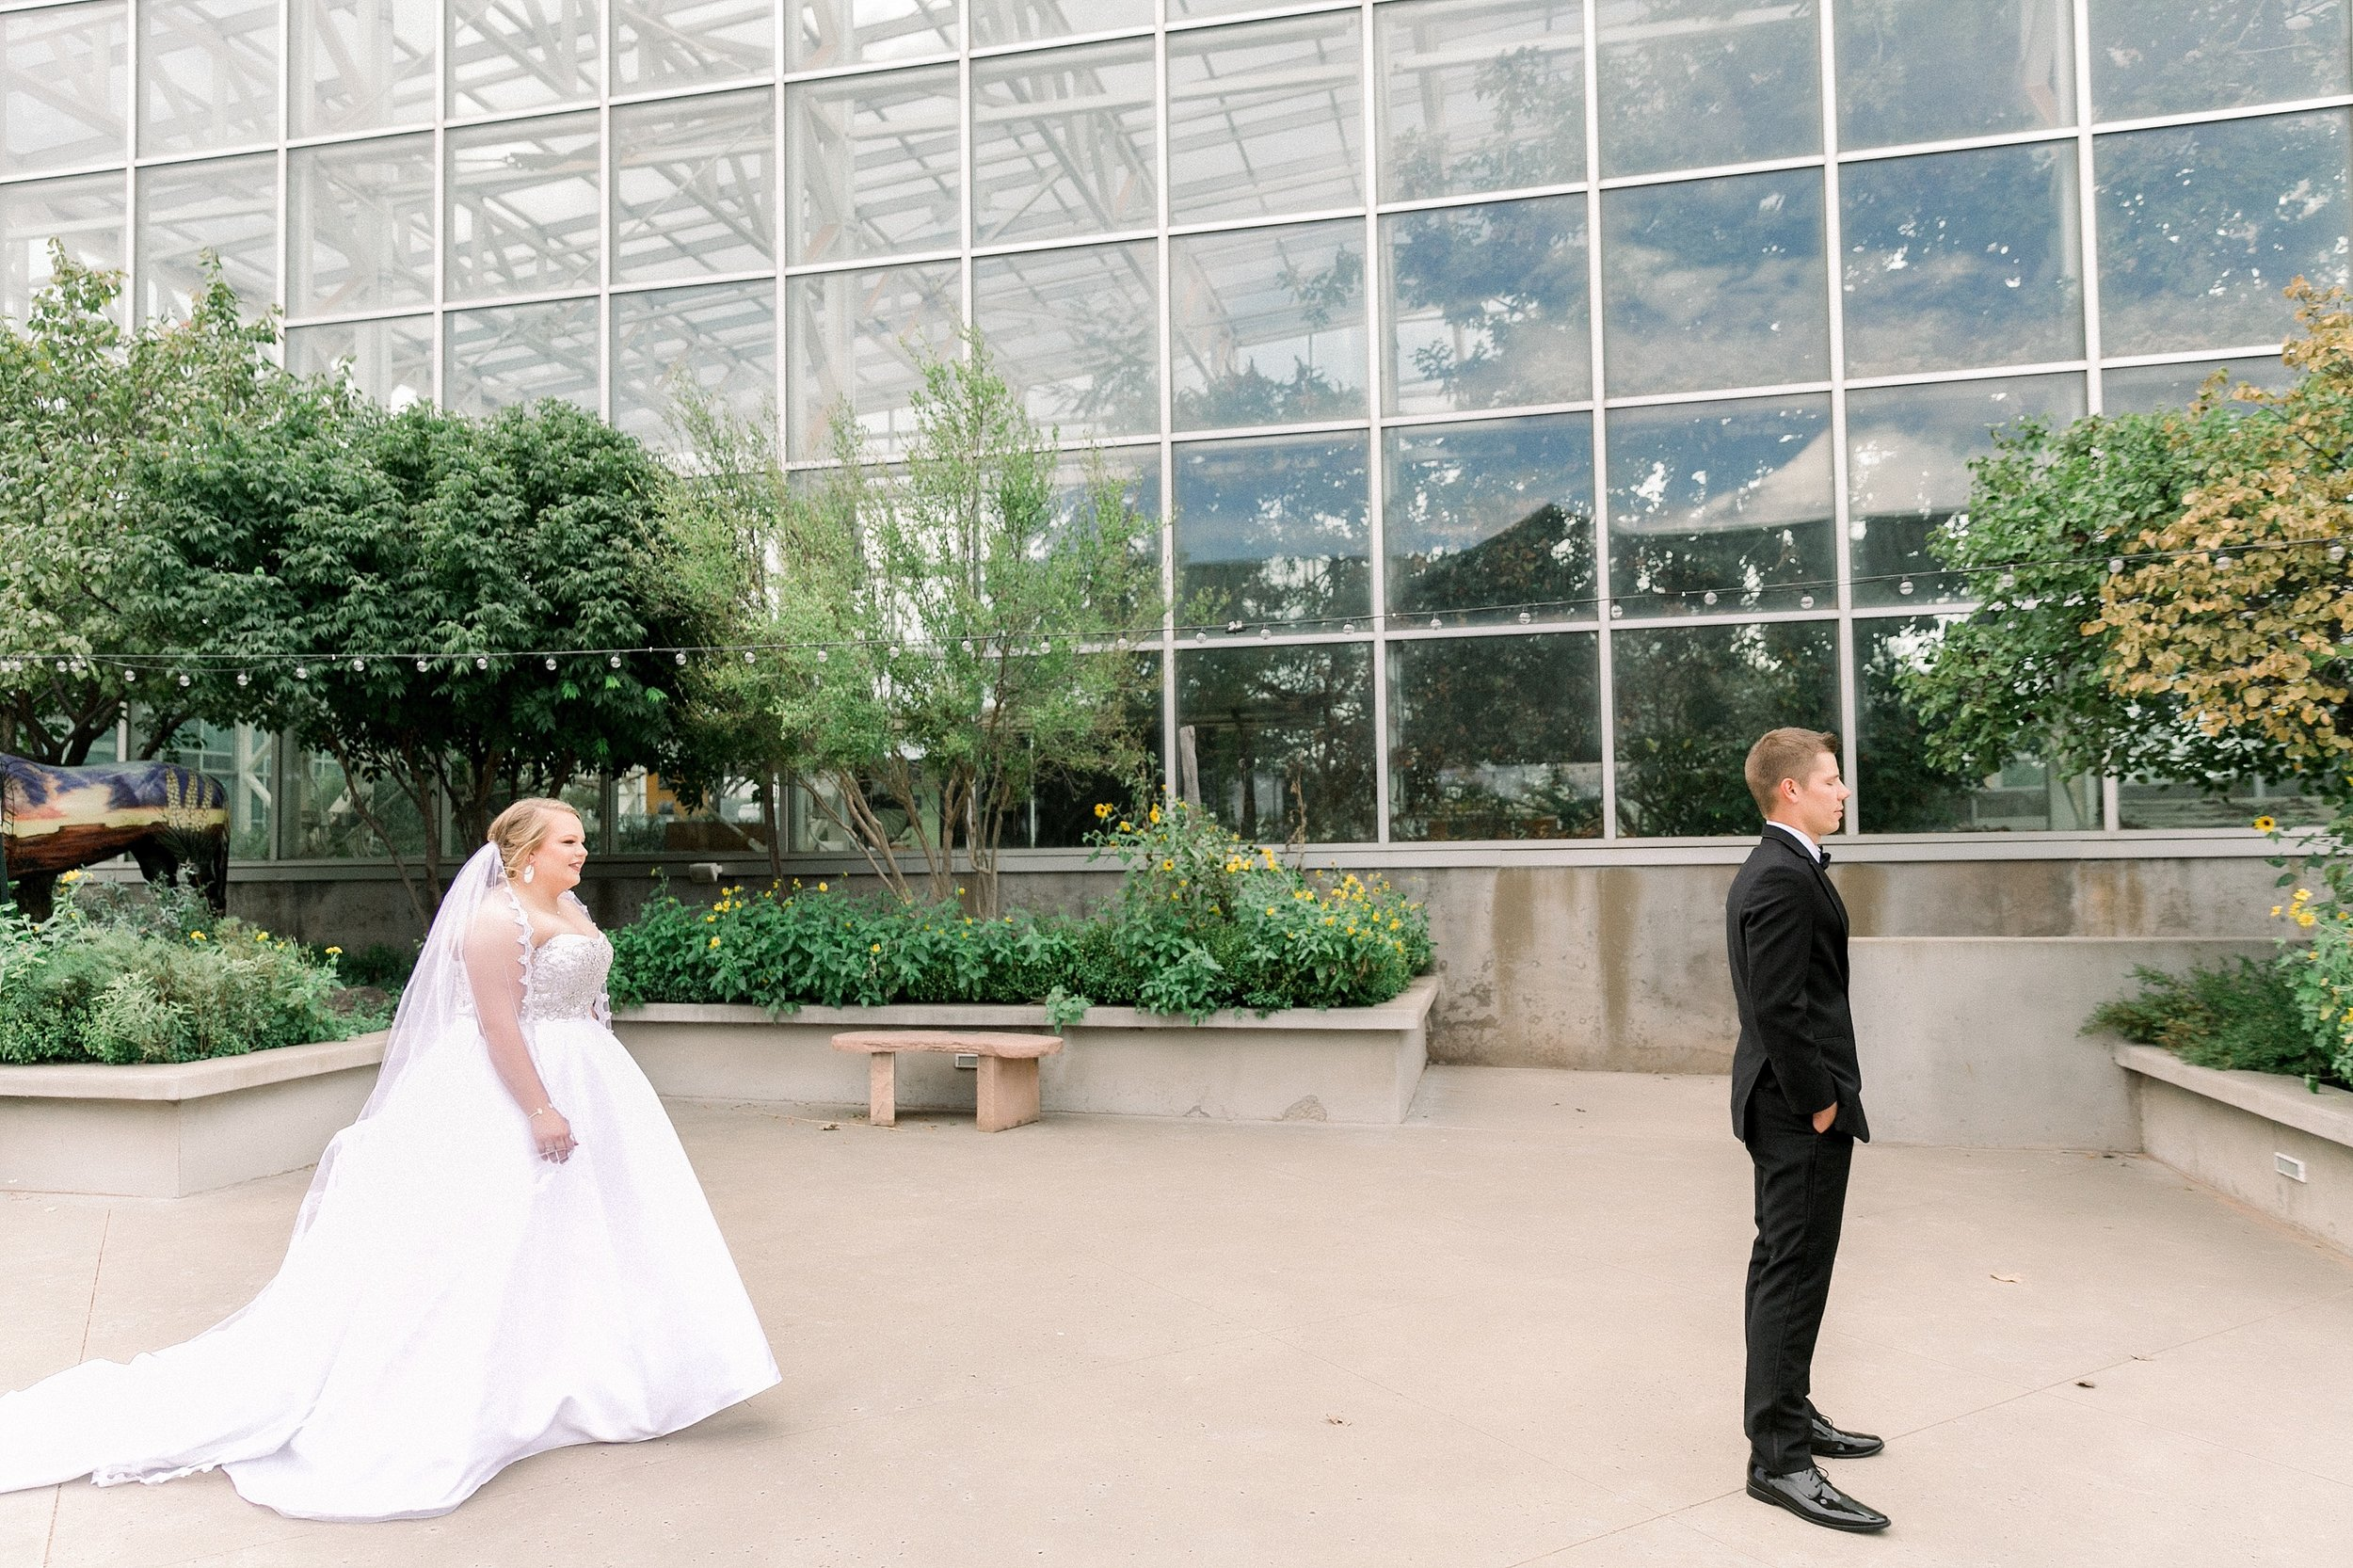 Ryanne-and-william-wedding-at-river-bend-nature-center-wichita-falls-texas-two-clever-chicks-0026.jpg